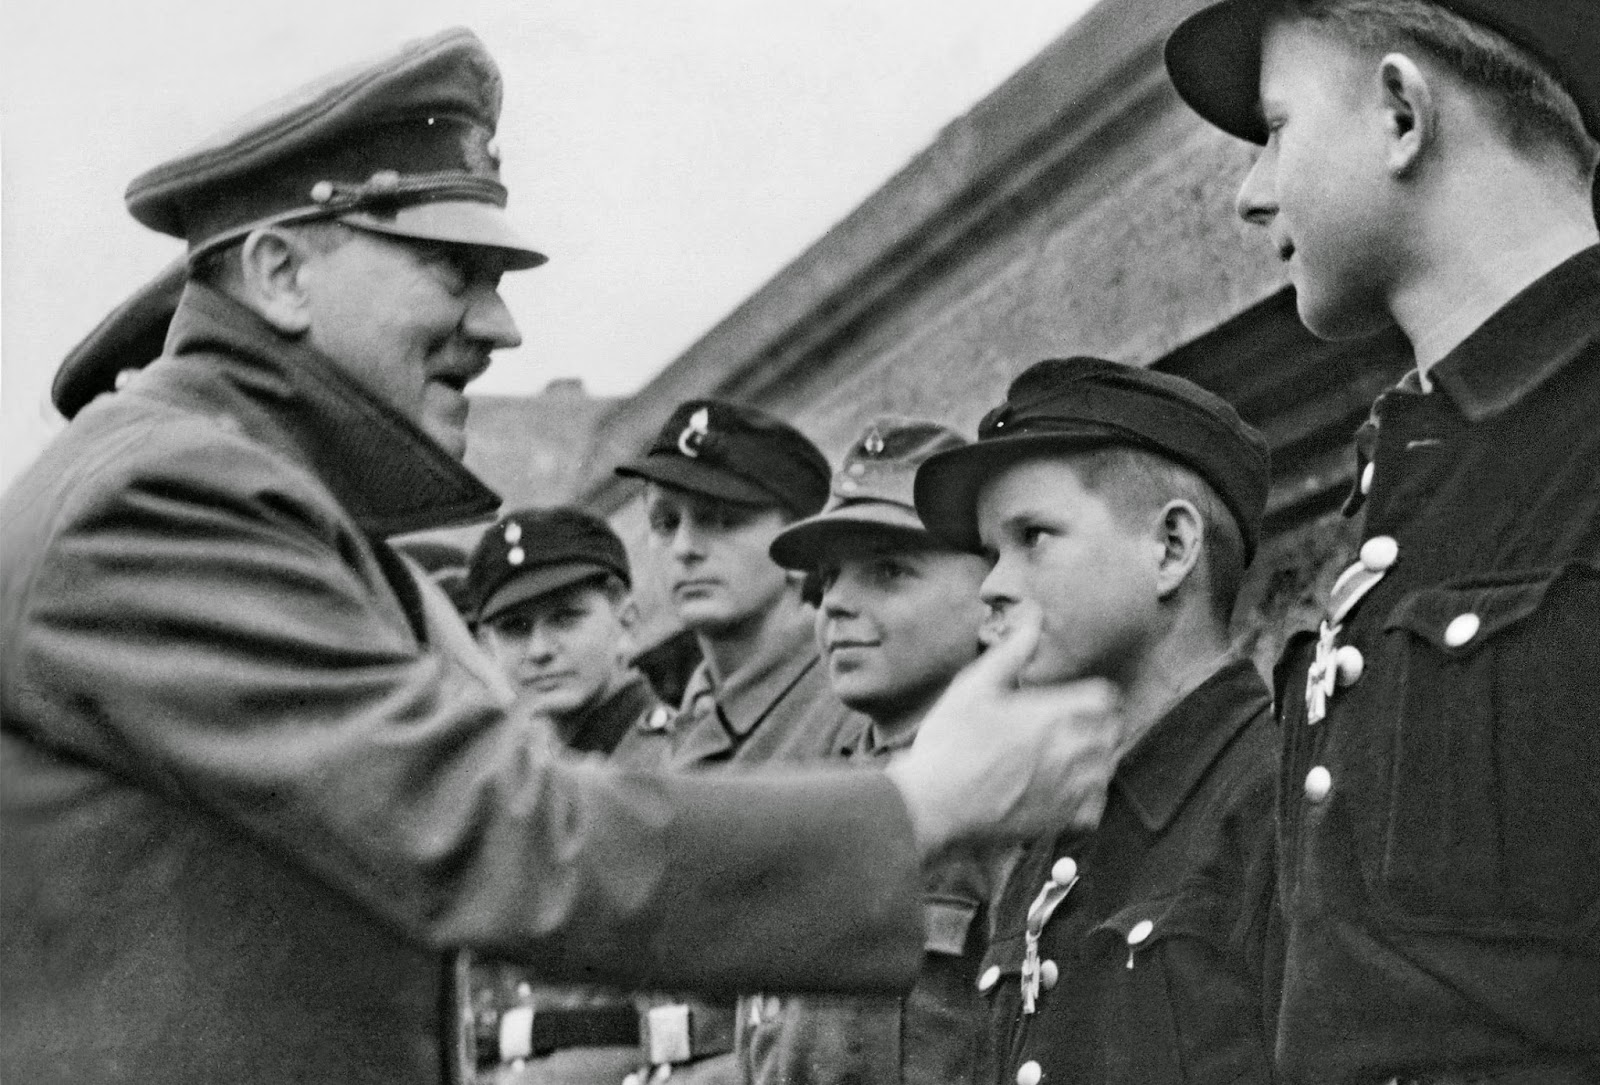 Hitler with Hitler youth boys